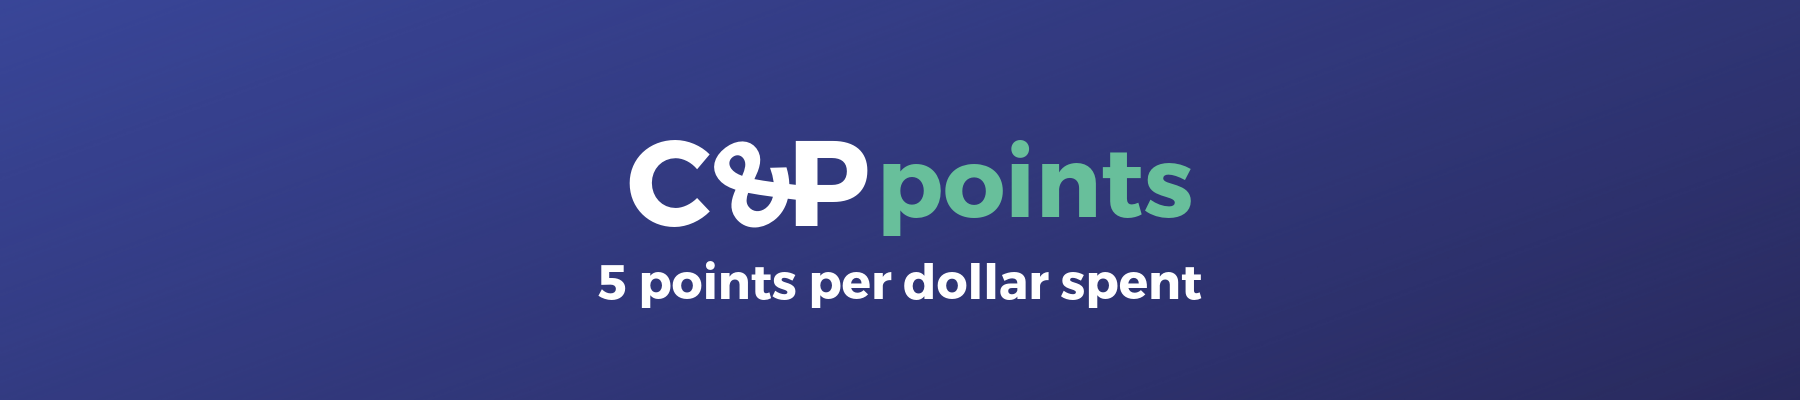 c-and-p-points-banner